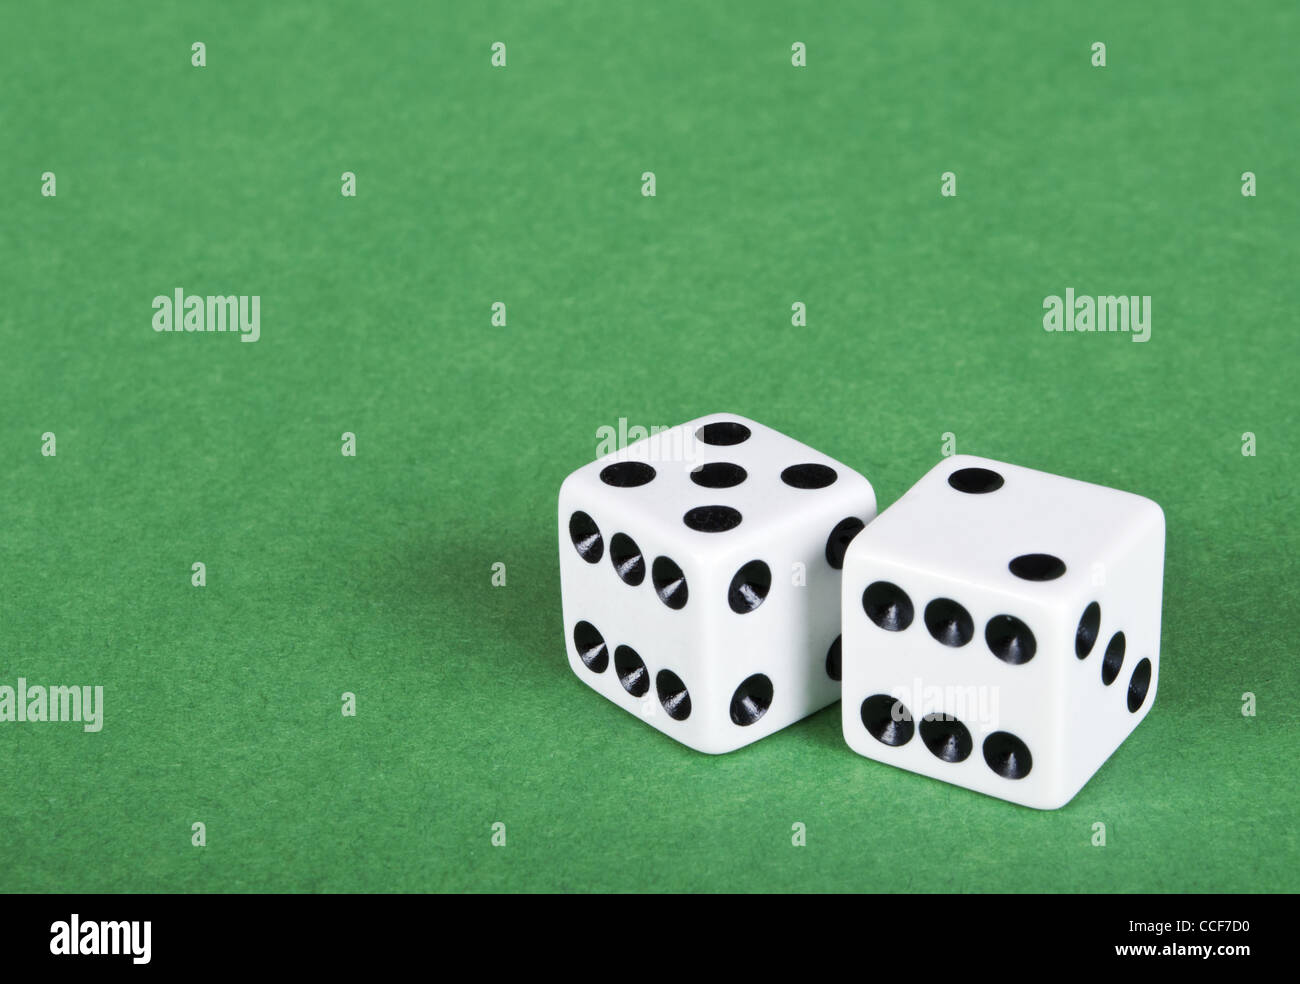 Two white dices on green background - Stock Image